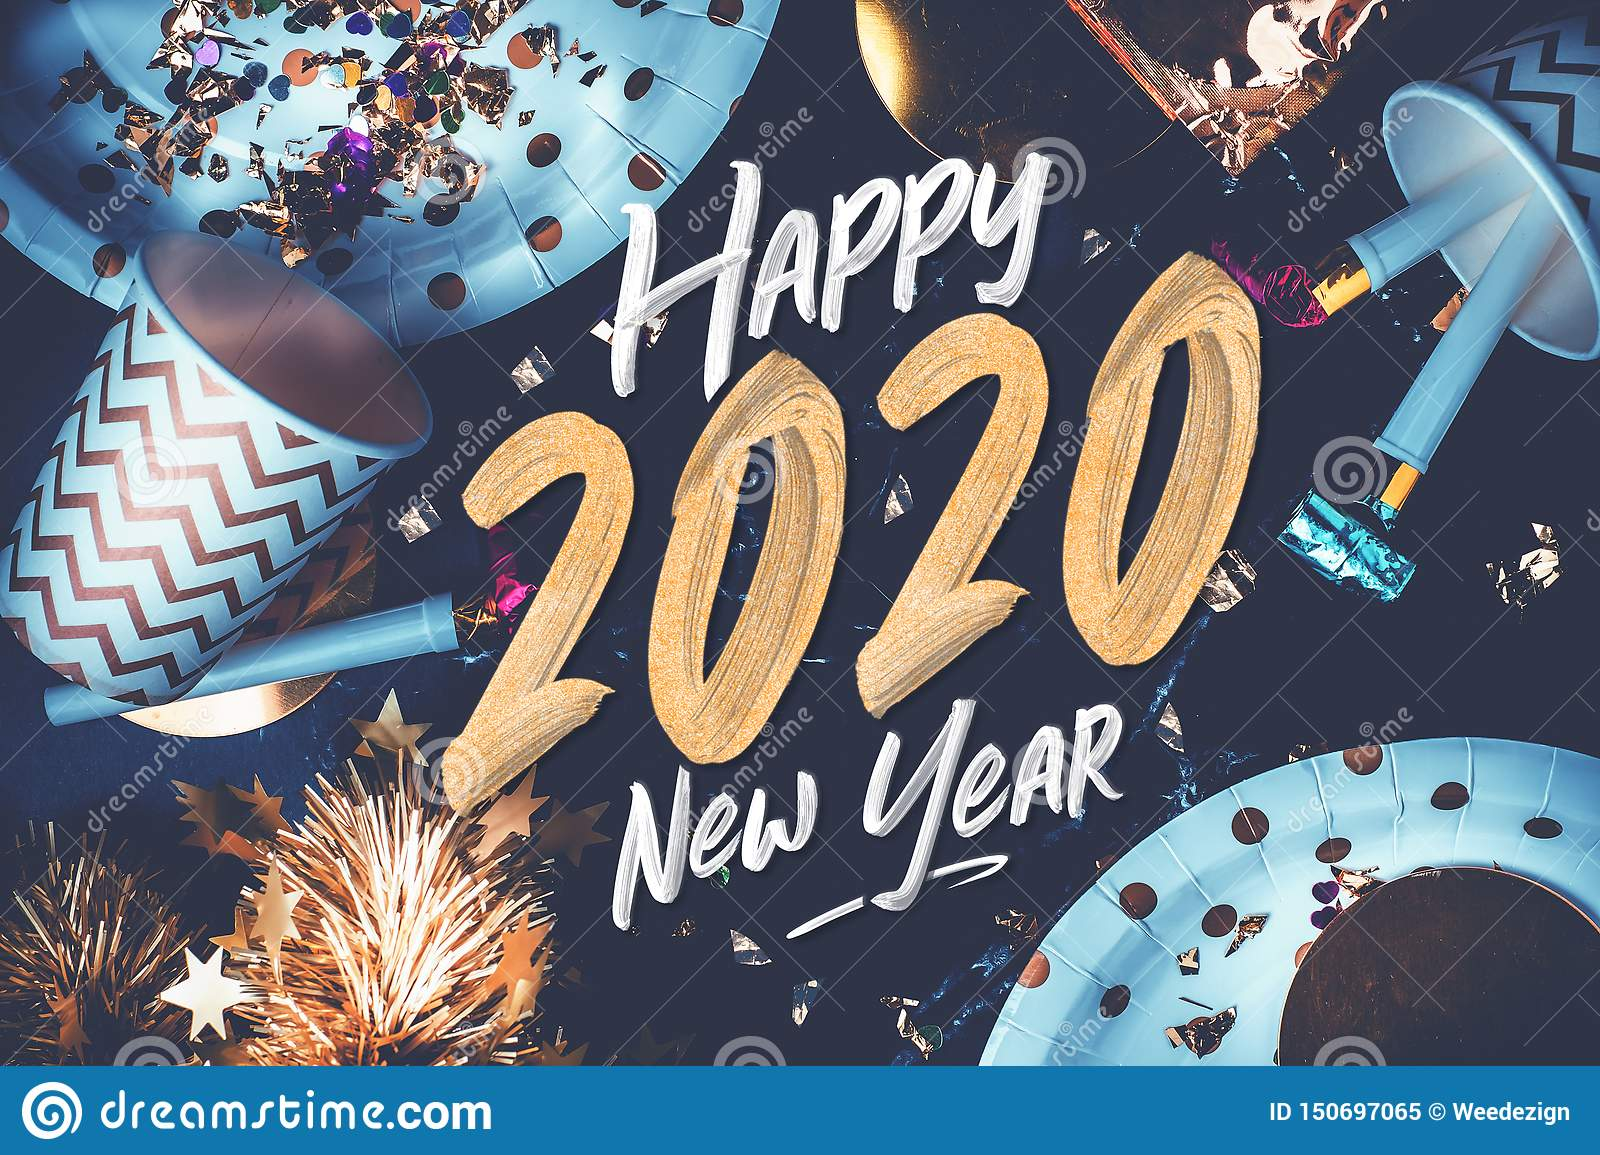 5 736 happy new year font photos free royalty free stock photos from dreamstime https www dreamstime com happy new year hand brush storke font marble table party cup blower tinsel confetti fun celebrate holiday time top view image150697065